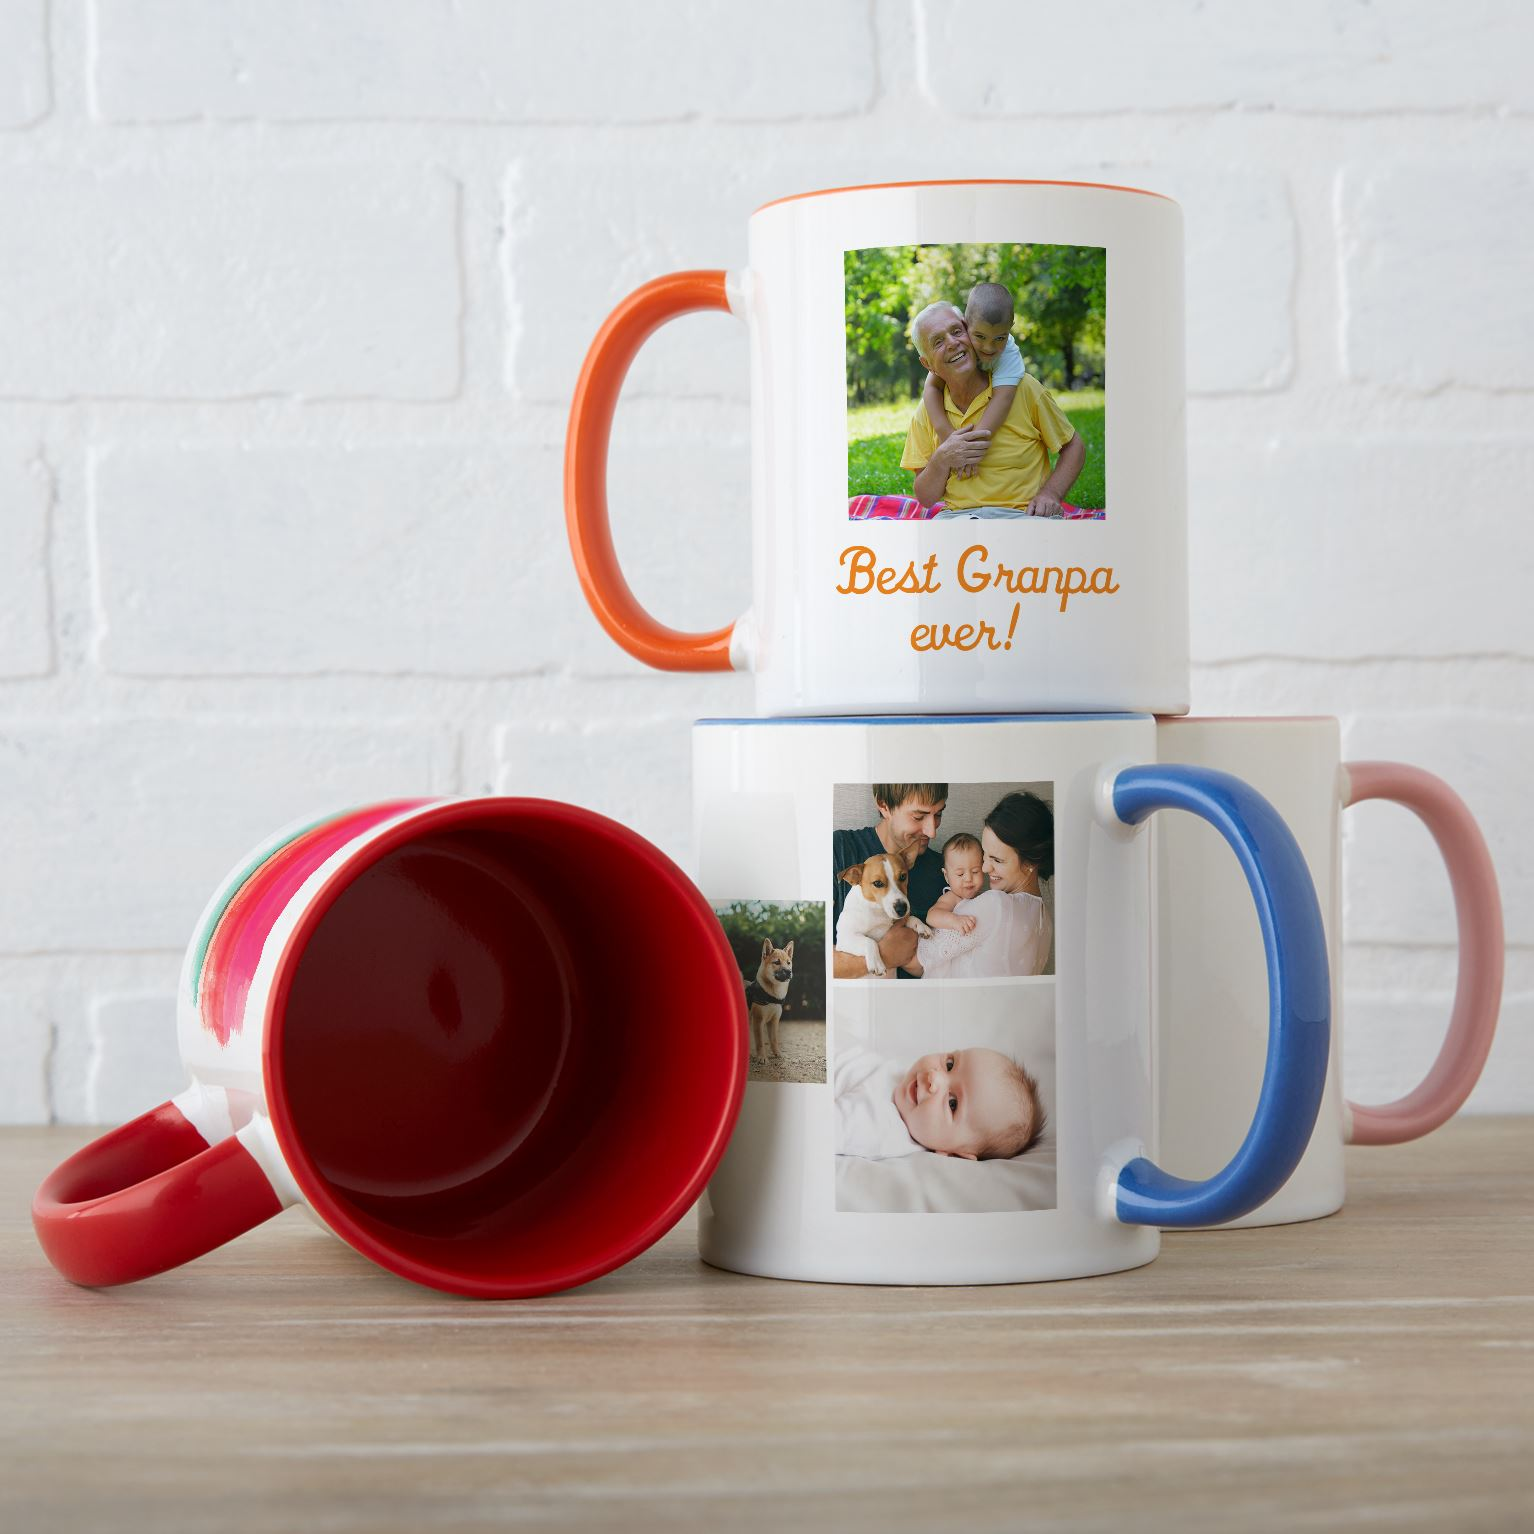 Accomplished image with regard to printable mugs